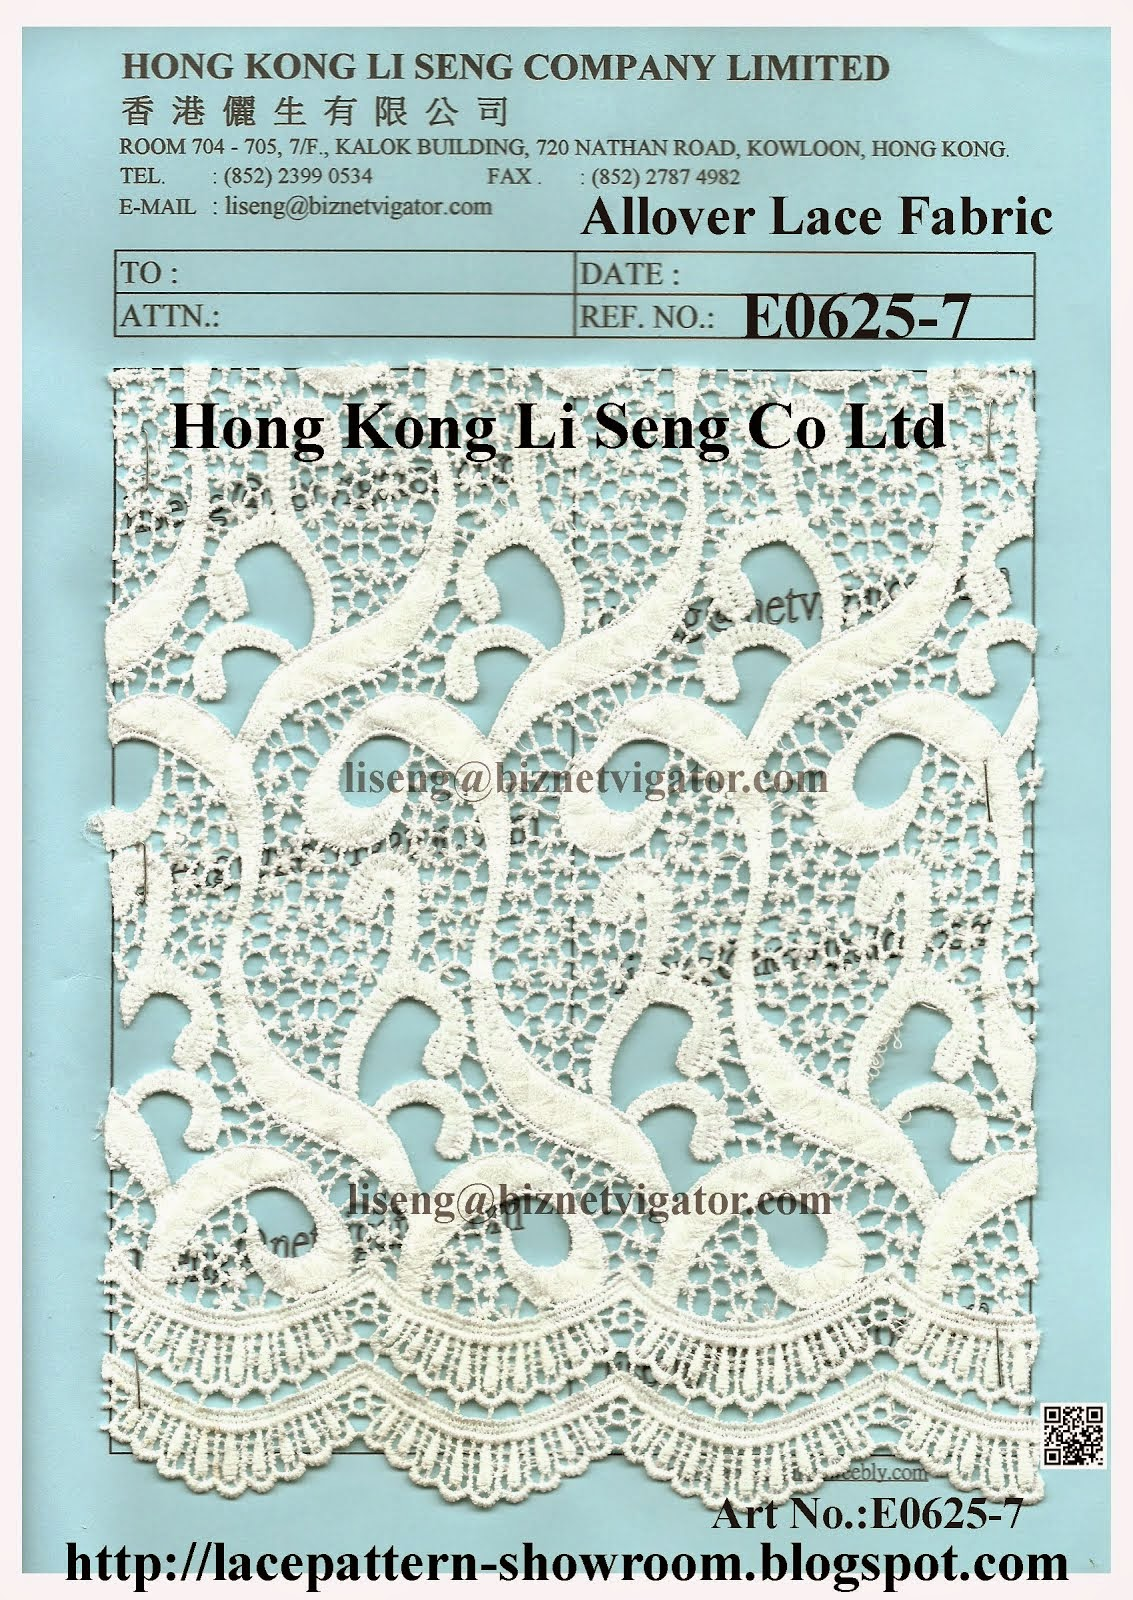 Allover Embroidery Lace Fabric New Pattern - Hong Kong Li Seng Co Ltd